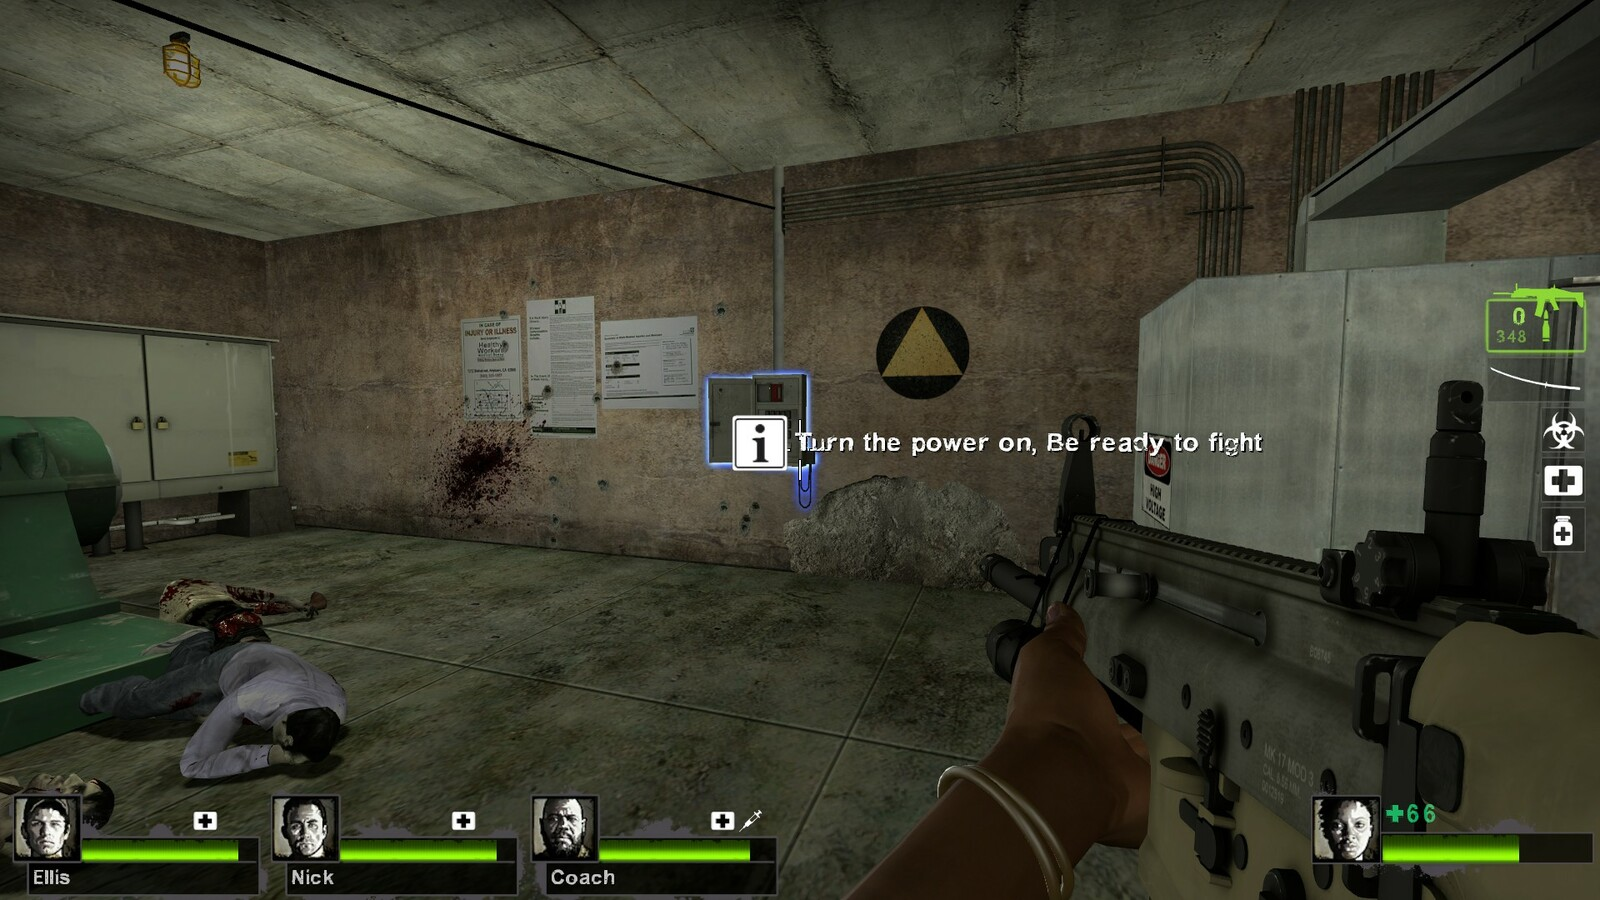 After the fight with the Tank, players must turn on the power in order to activate the lift to move forward out of the sewers. Doing so will alert all zombies to swarm the players position.